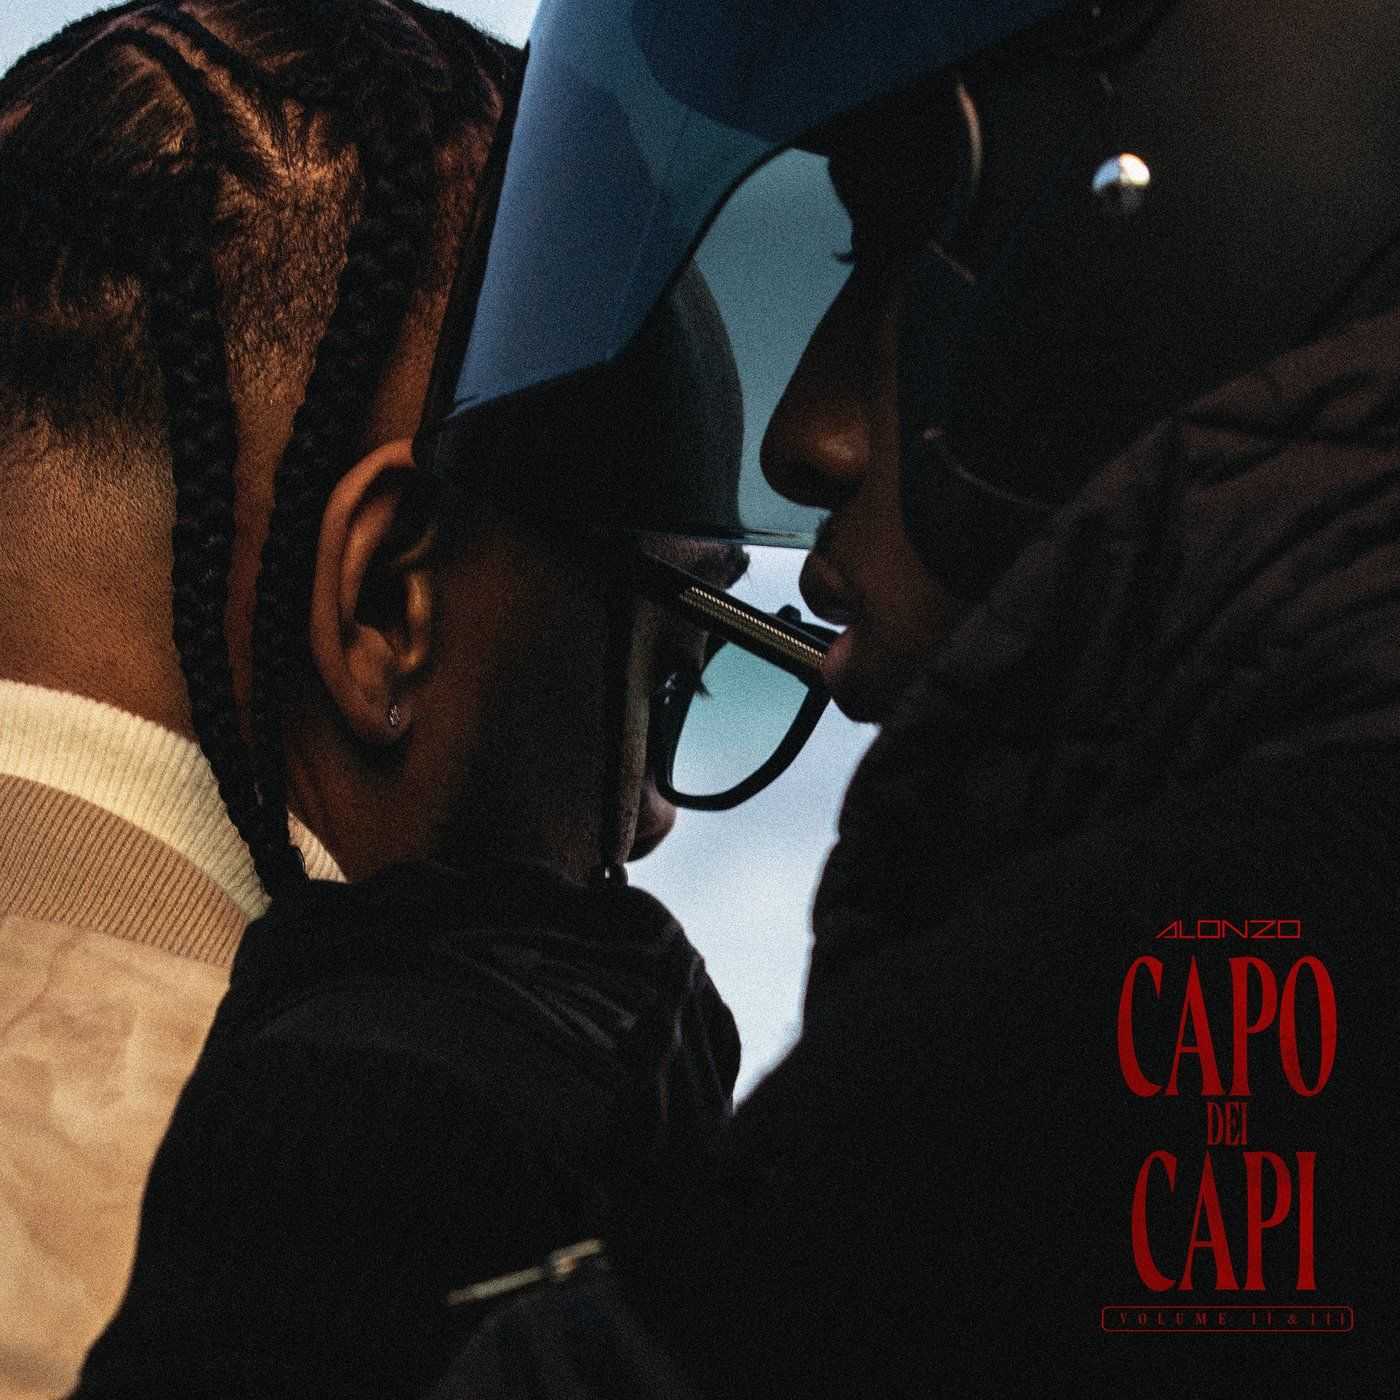 Cover album Capo Dei Capi Vol. II et III (Explicit)